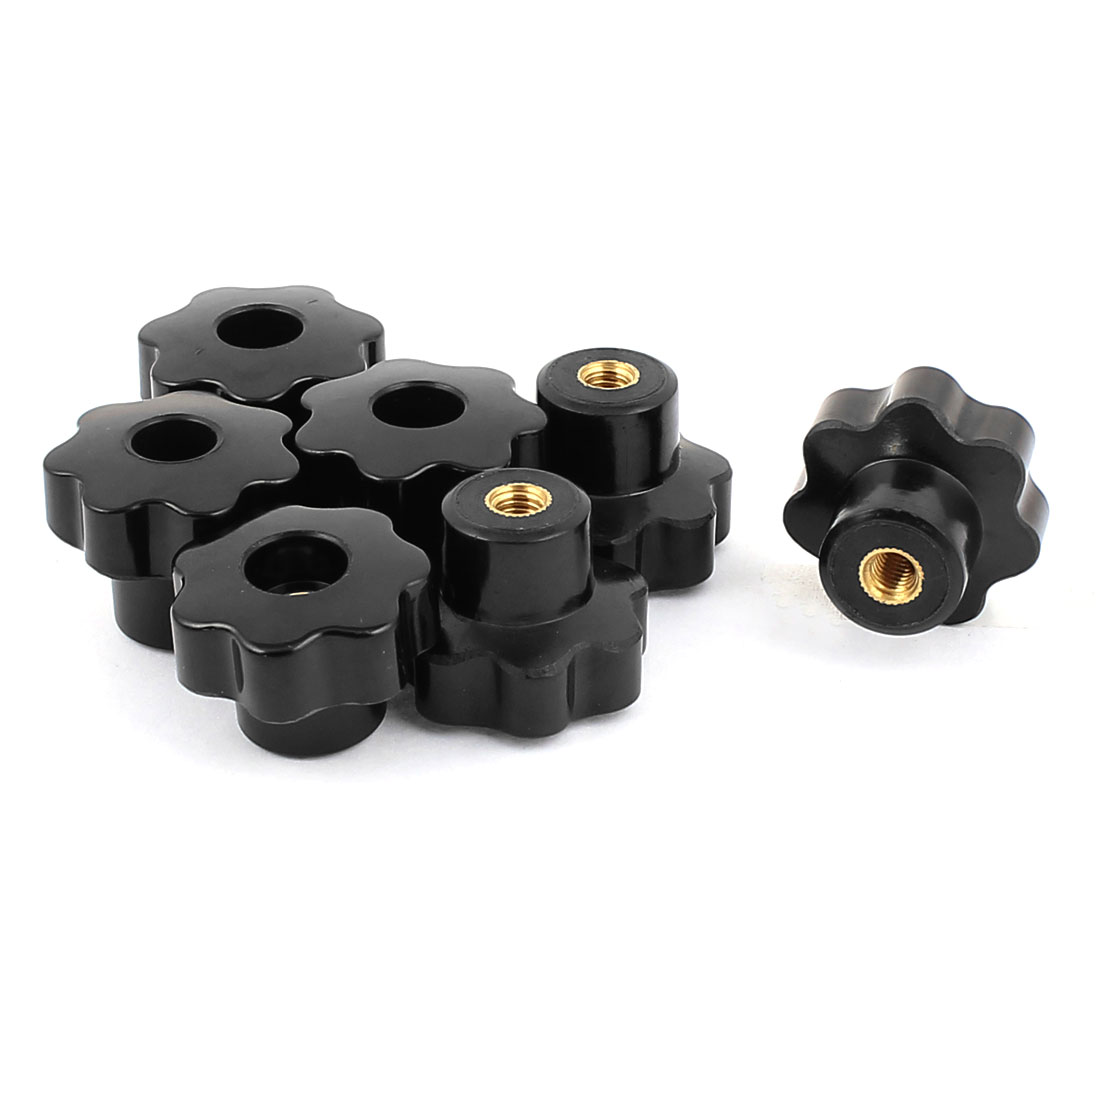 M6 Female Thread Grip Replacement Head Clamping Nuts Star Knob 7 Pcs